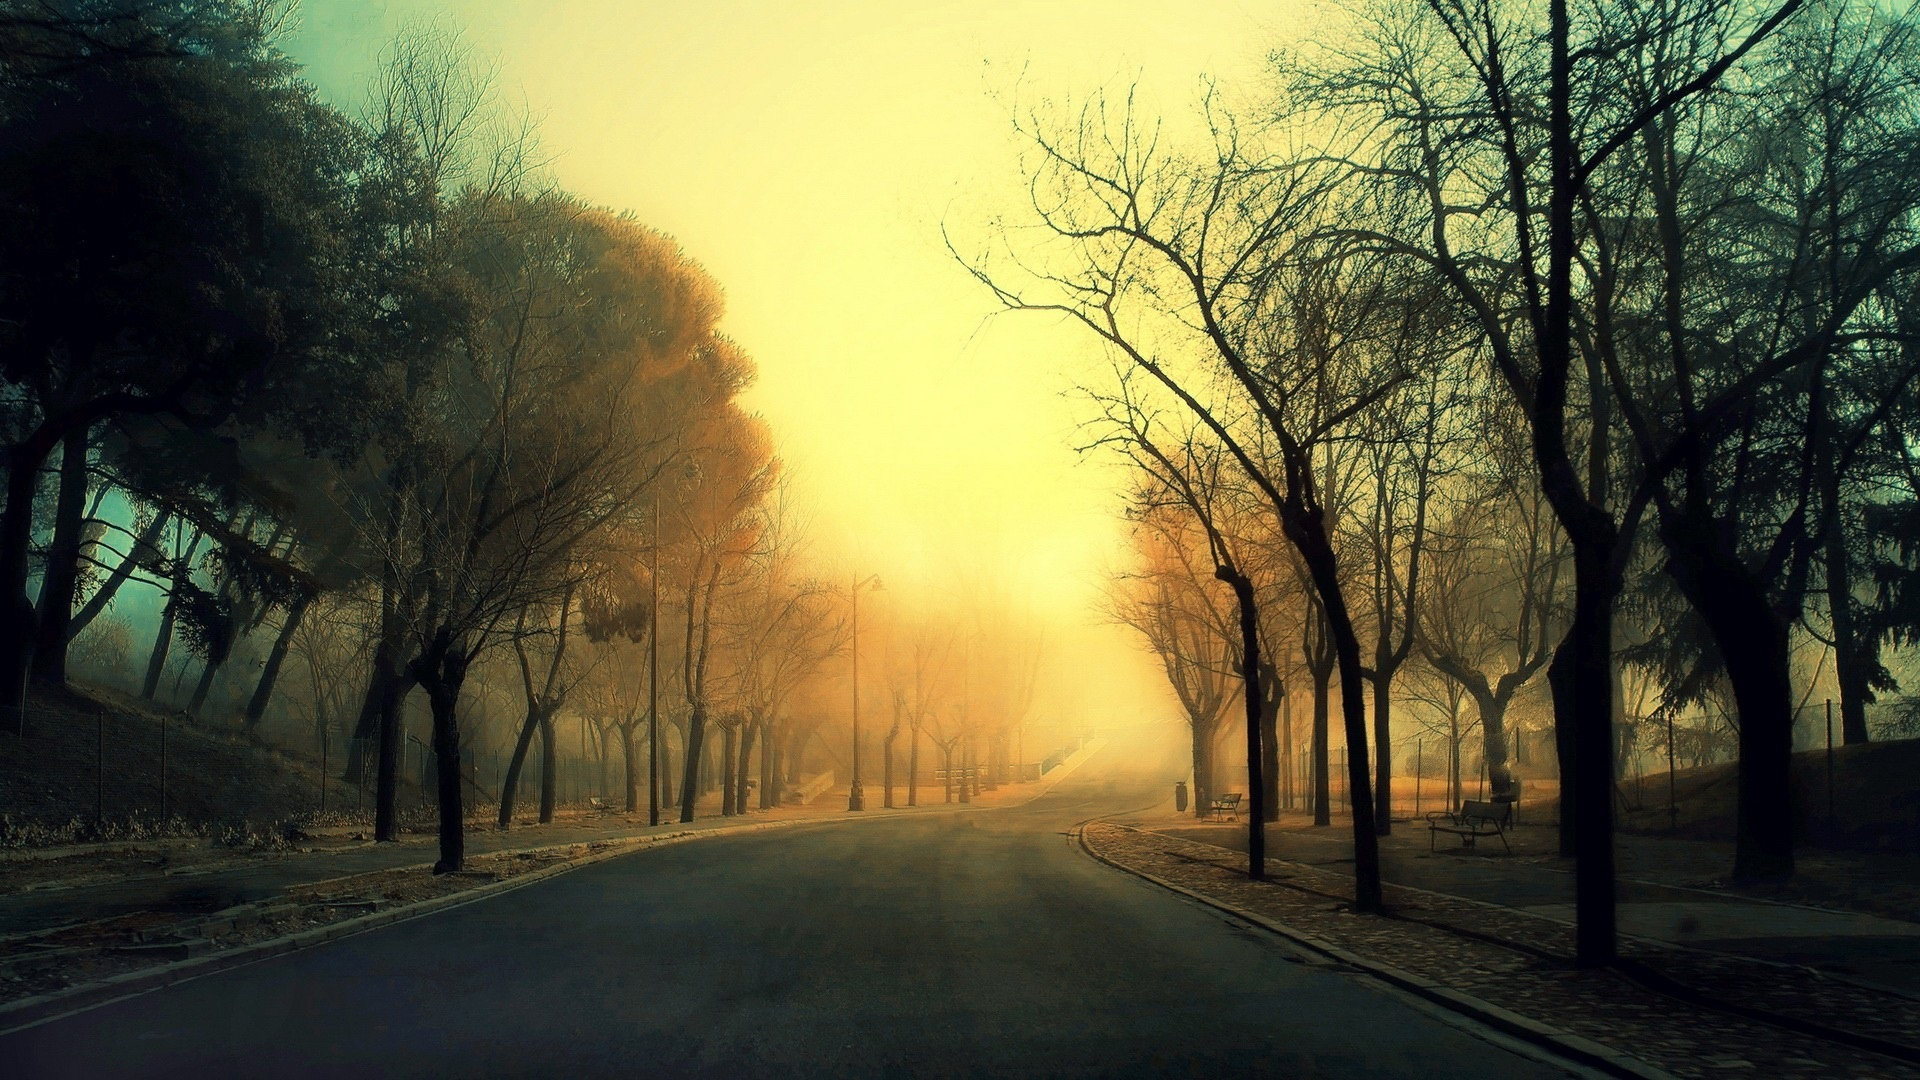 road_trees_fog_morning_1920x1080.jpg